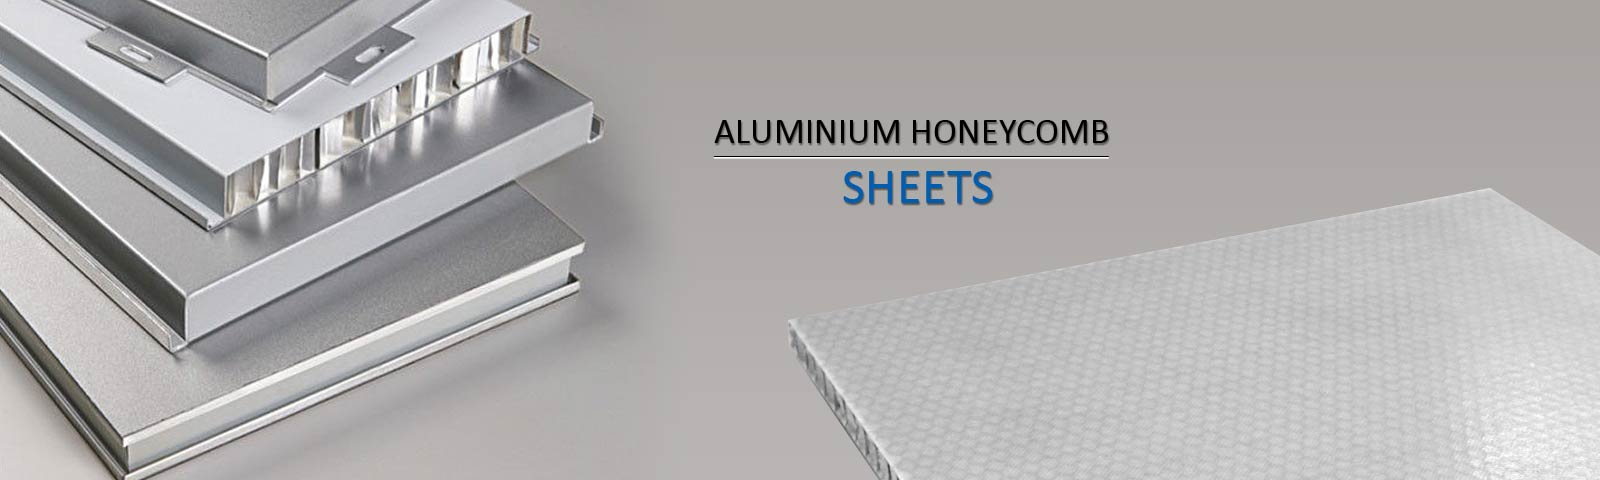 Aluminium Honeycom Sheets Manufacturer and Supplier in Belonia